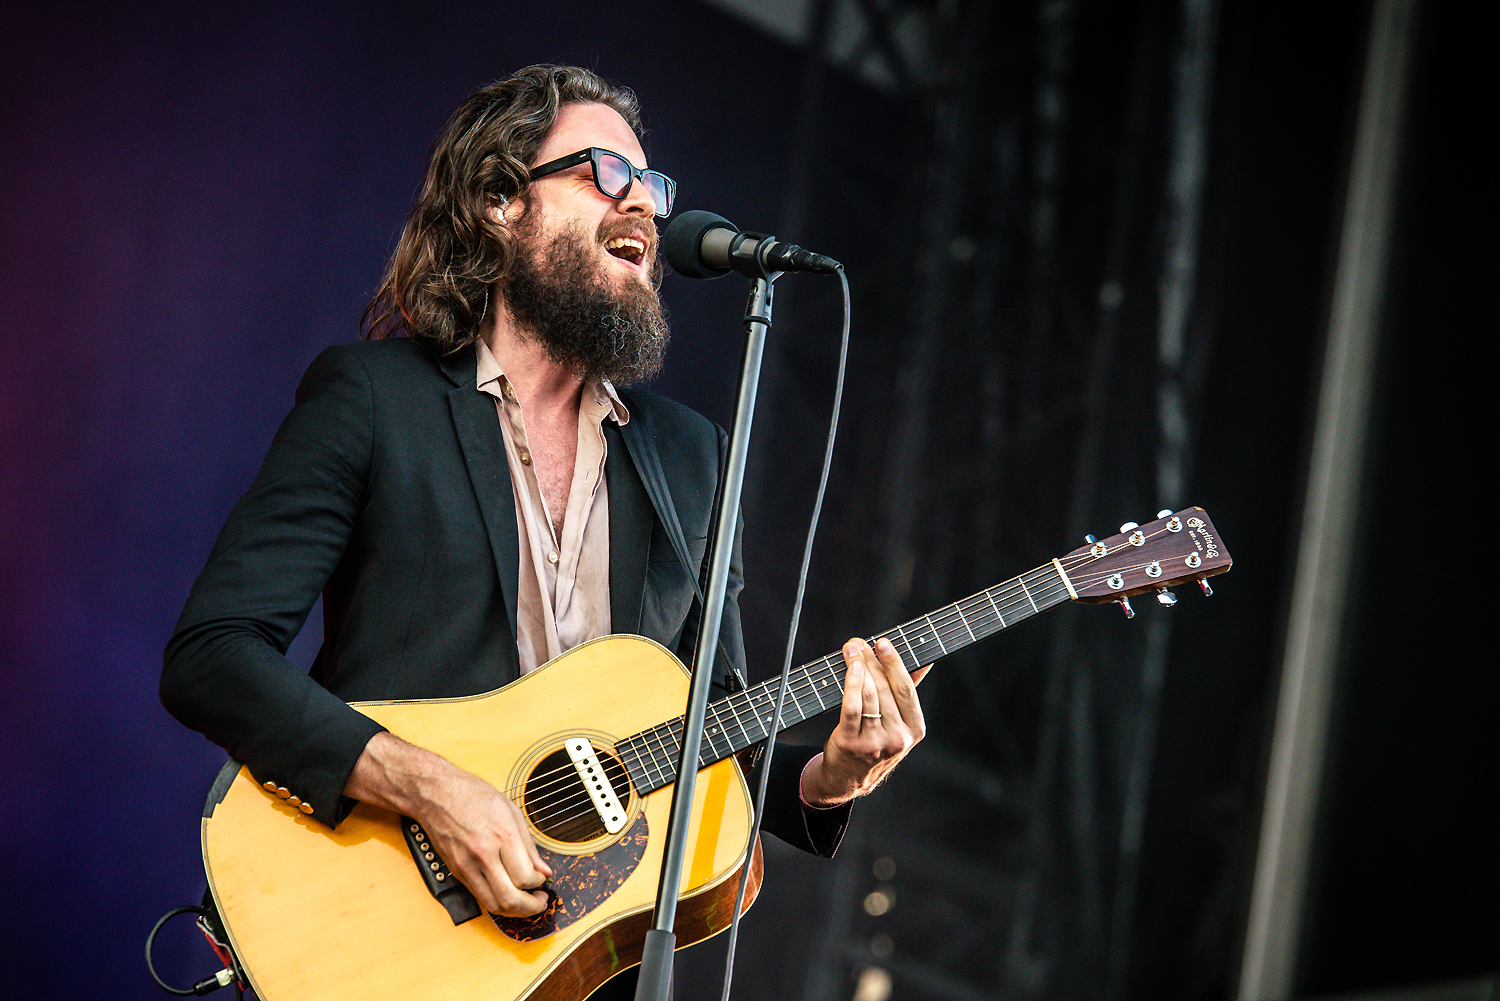 Father John Misty @ Best Kept Secret 2018 (Jan Van den Bulck)